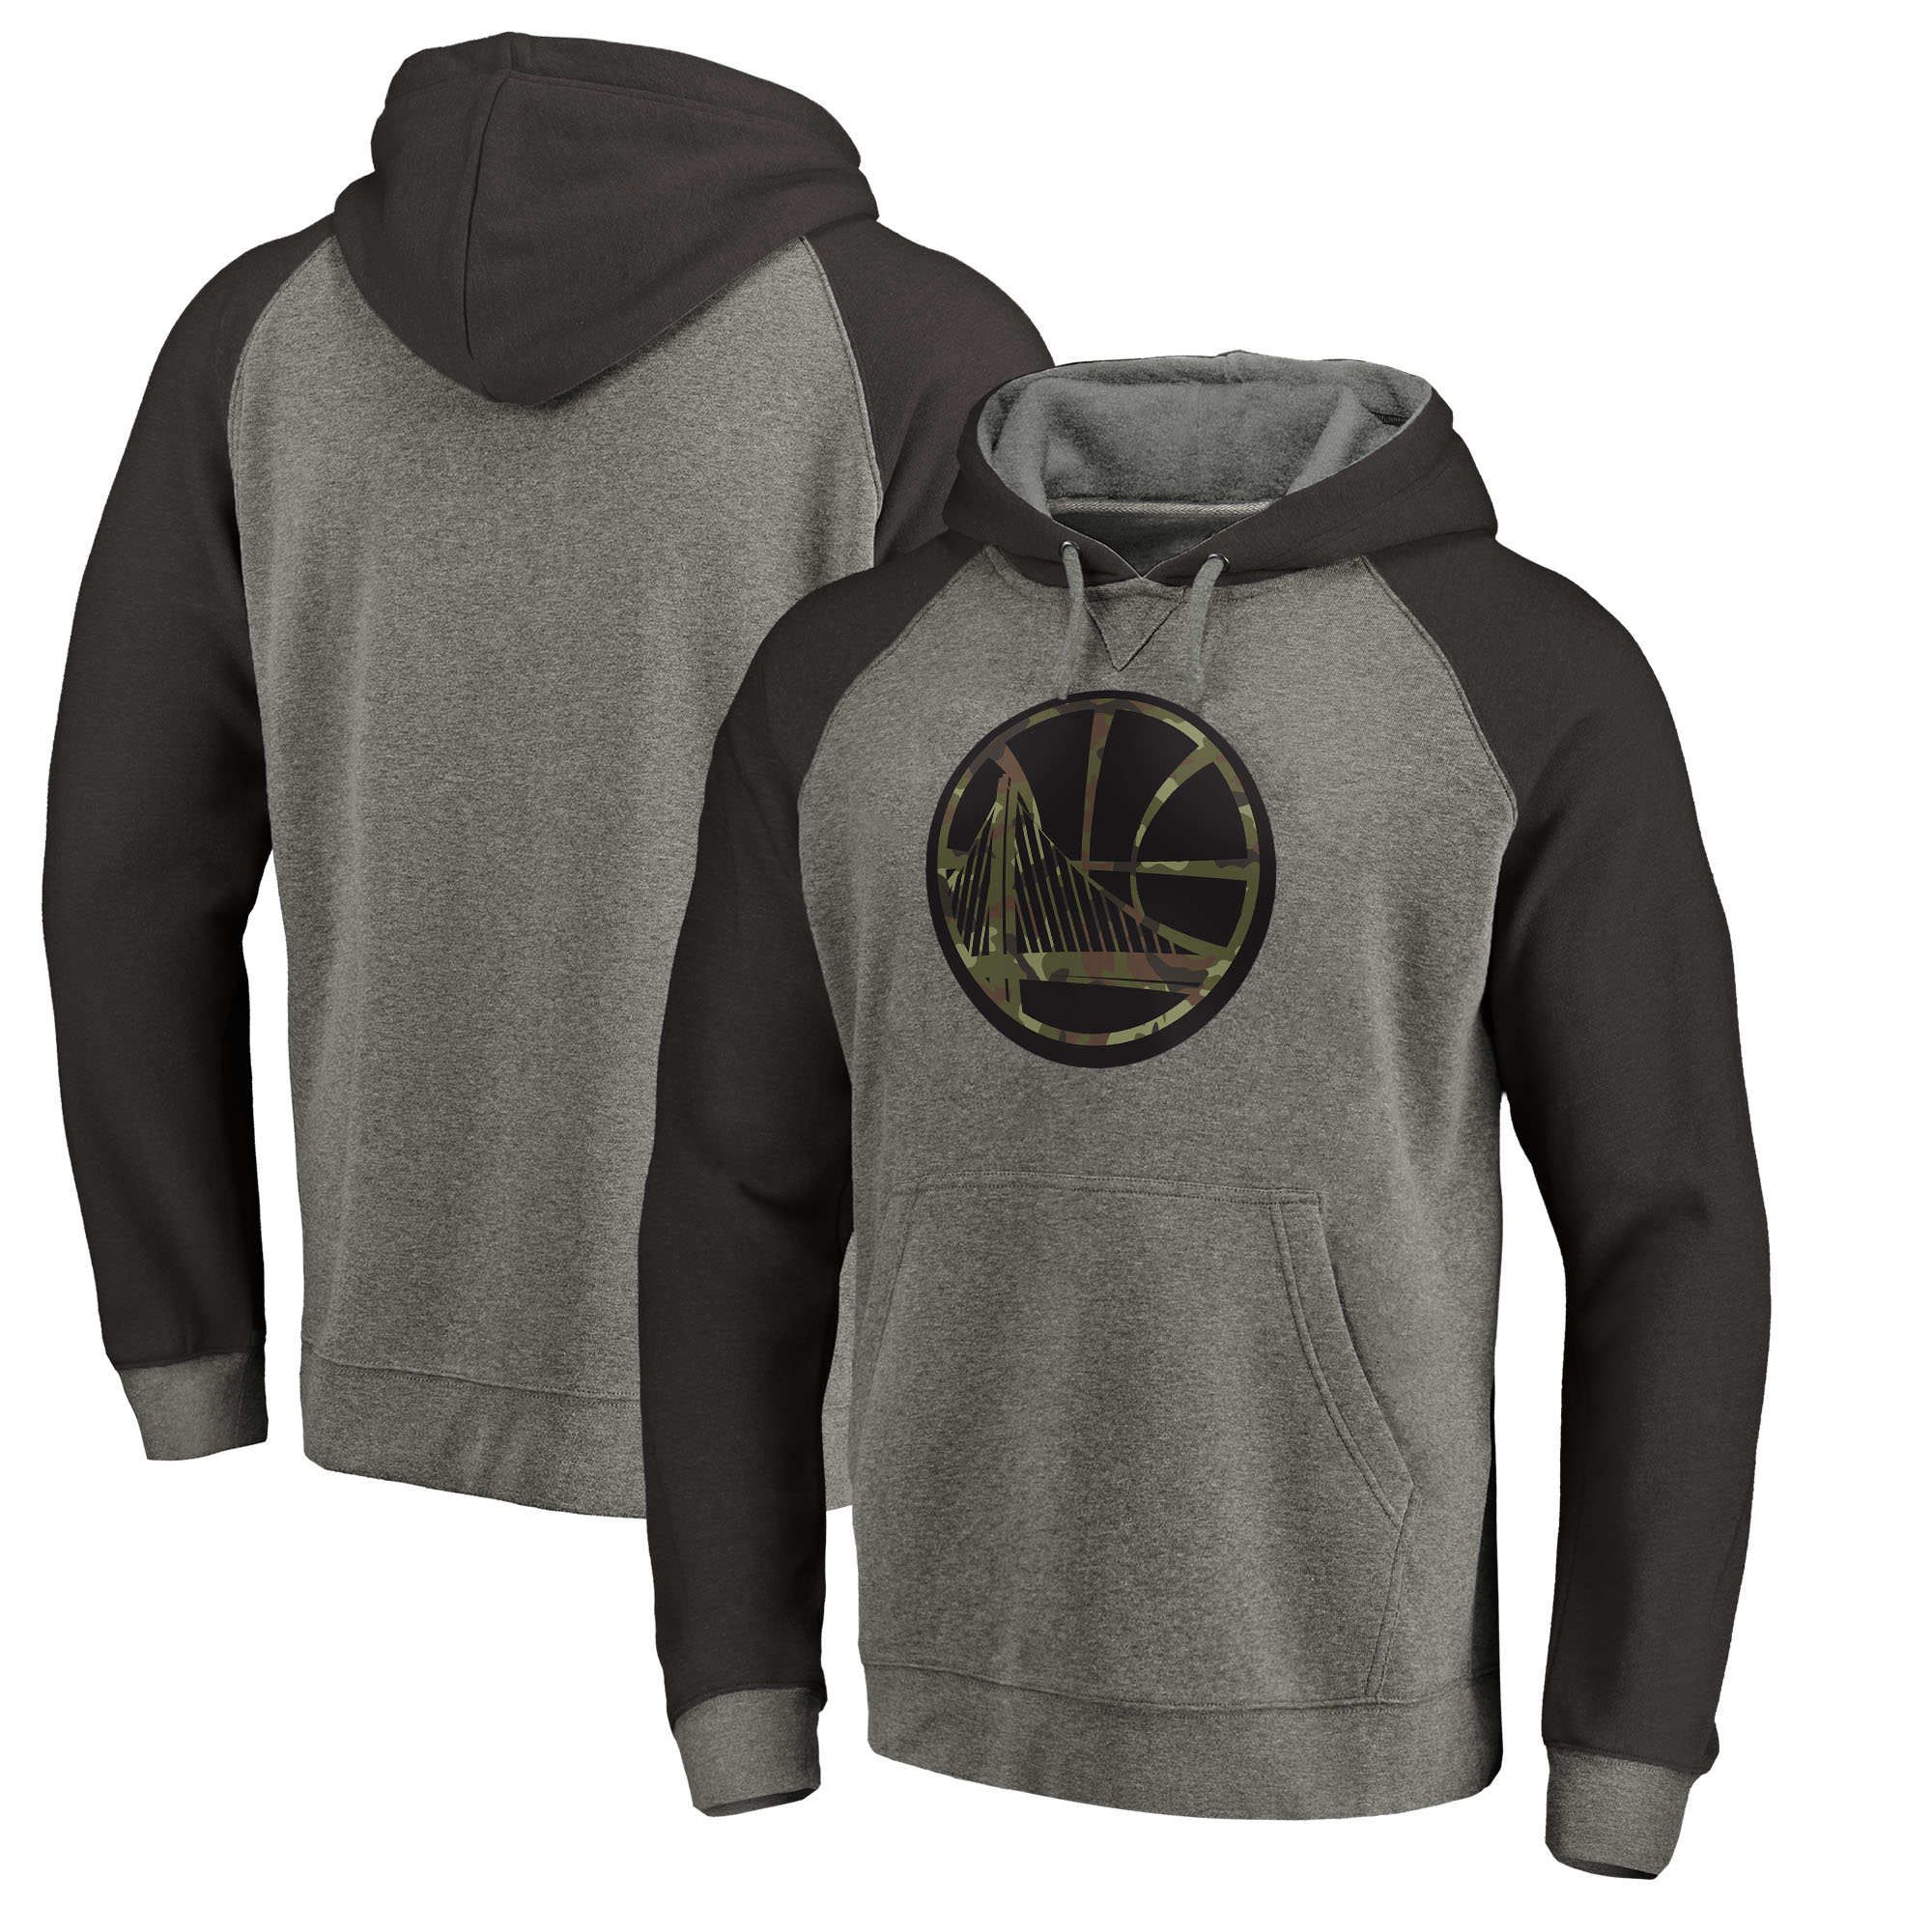 Golden State Warriors Fanatics Branded Prestige Camo Tri-Blend Pullover Hoodie - Heathered Gray